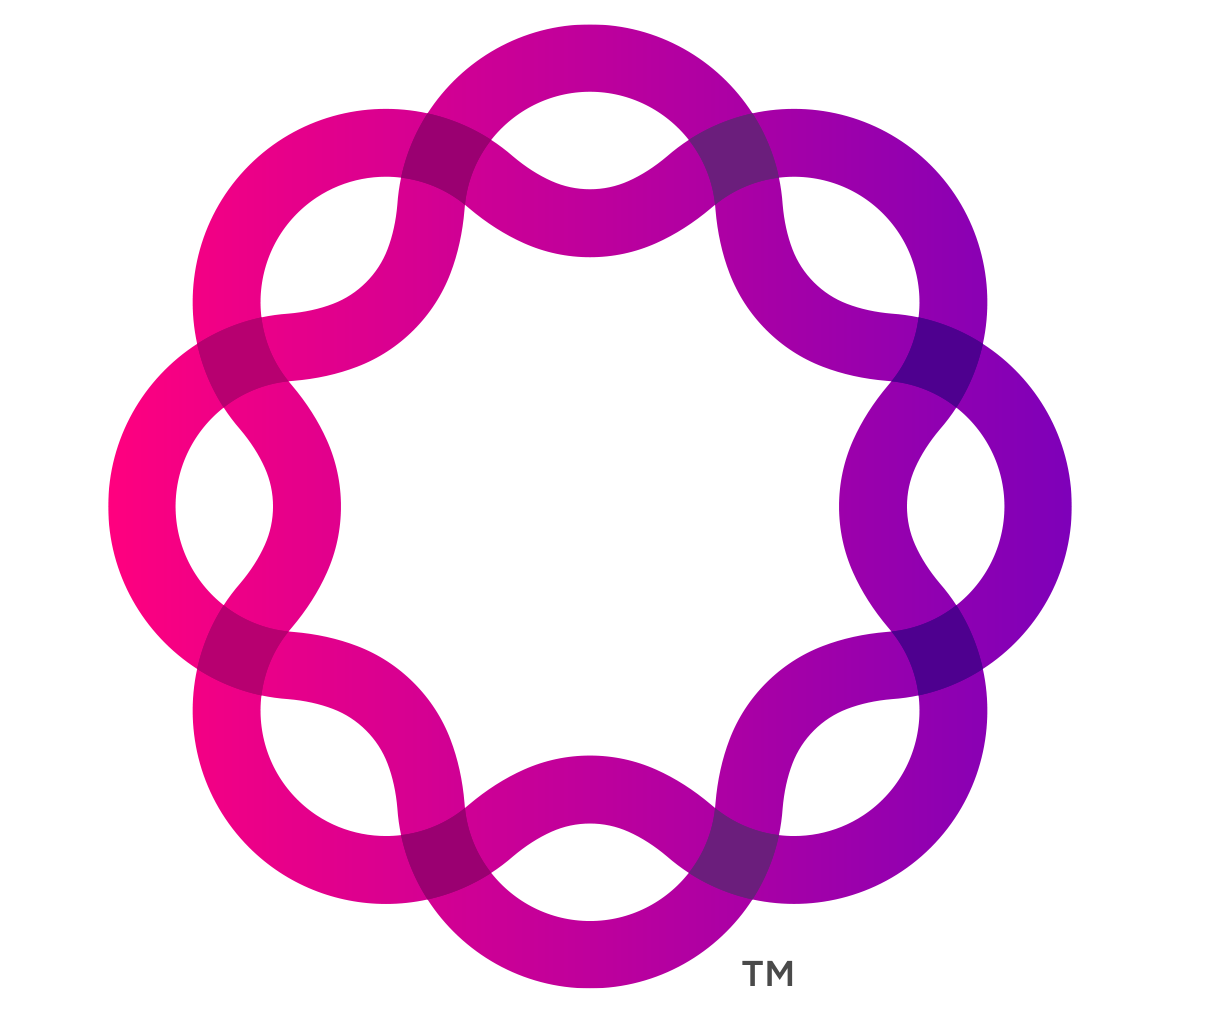 Ribbon-logo